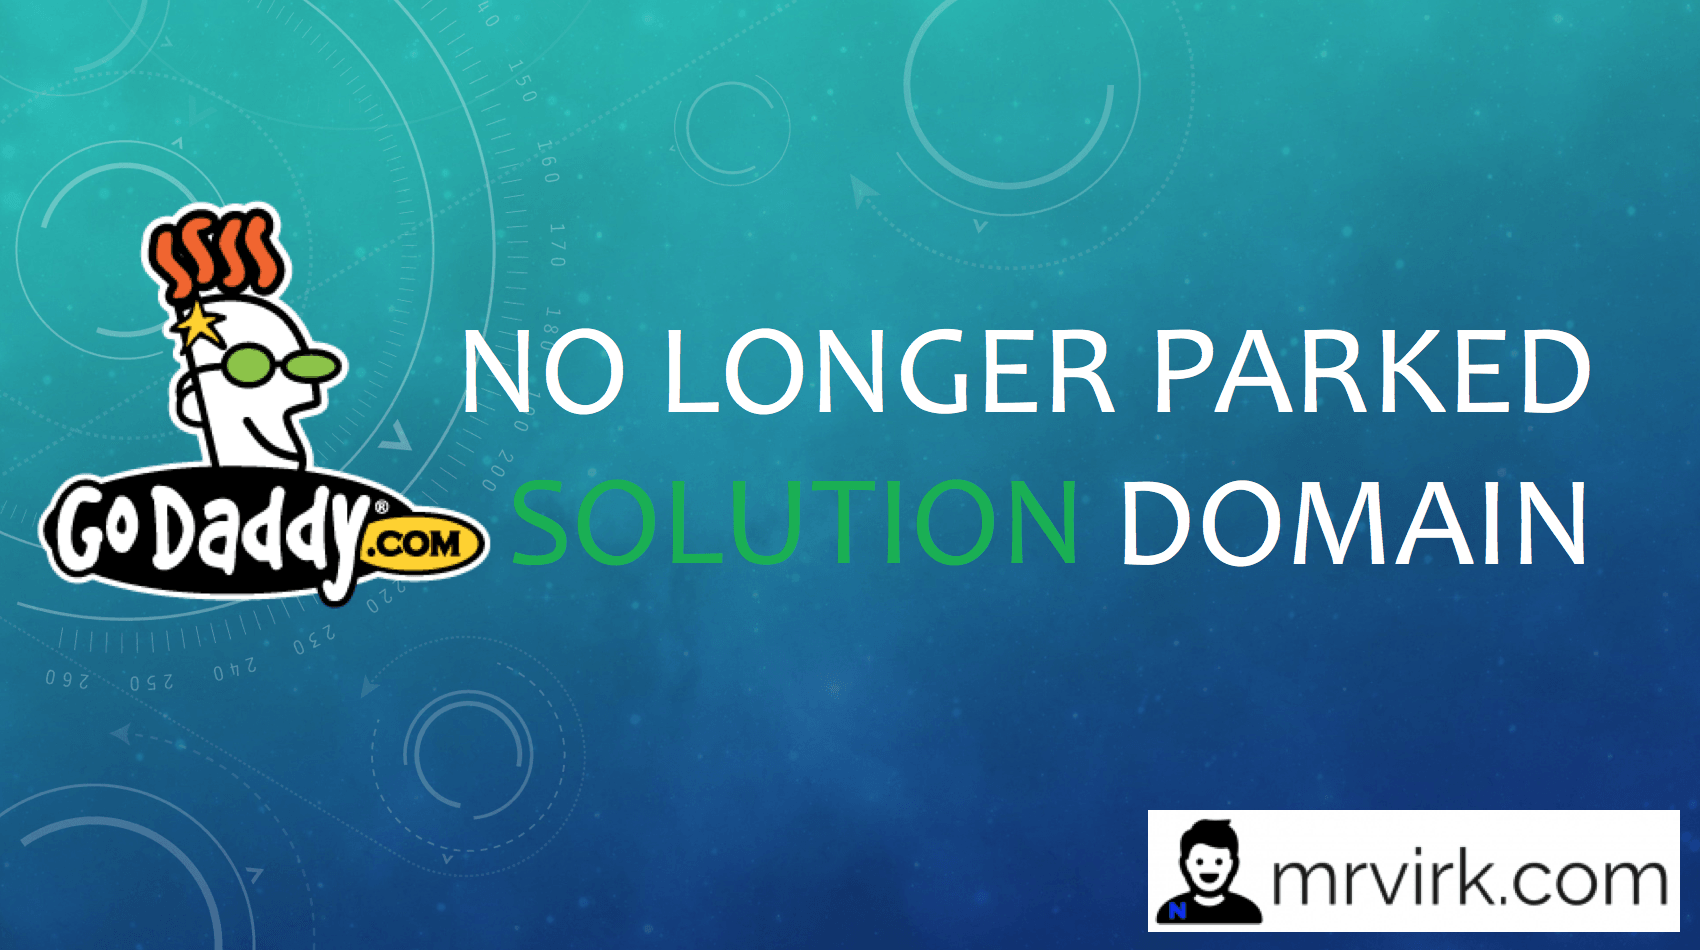 The domain is no longer parked by GoDaddy